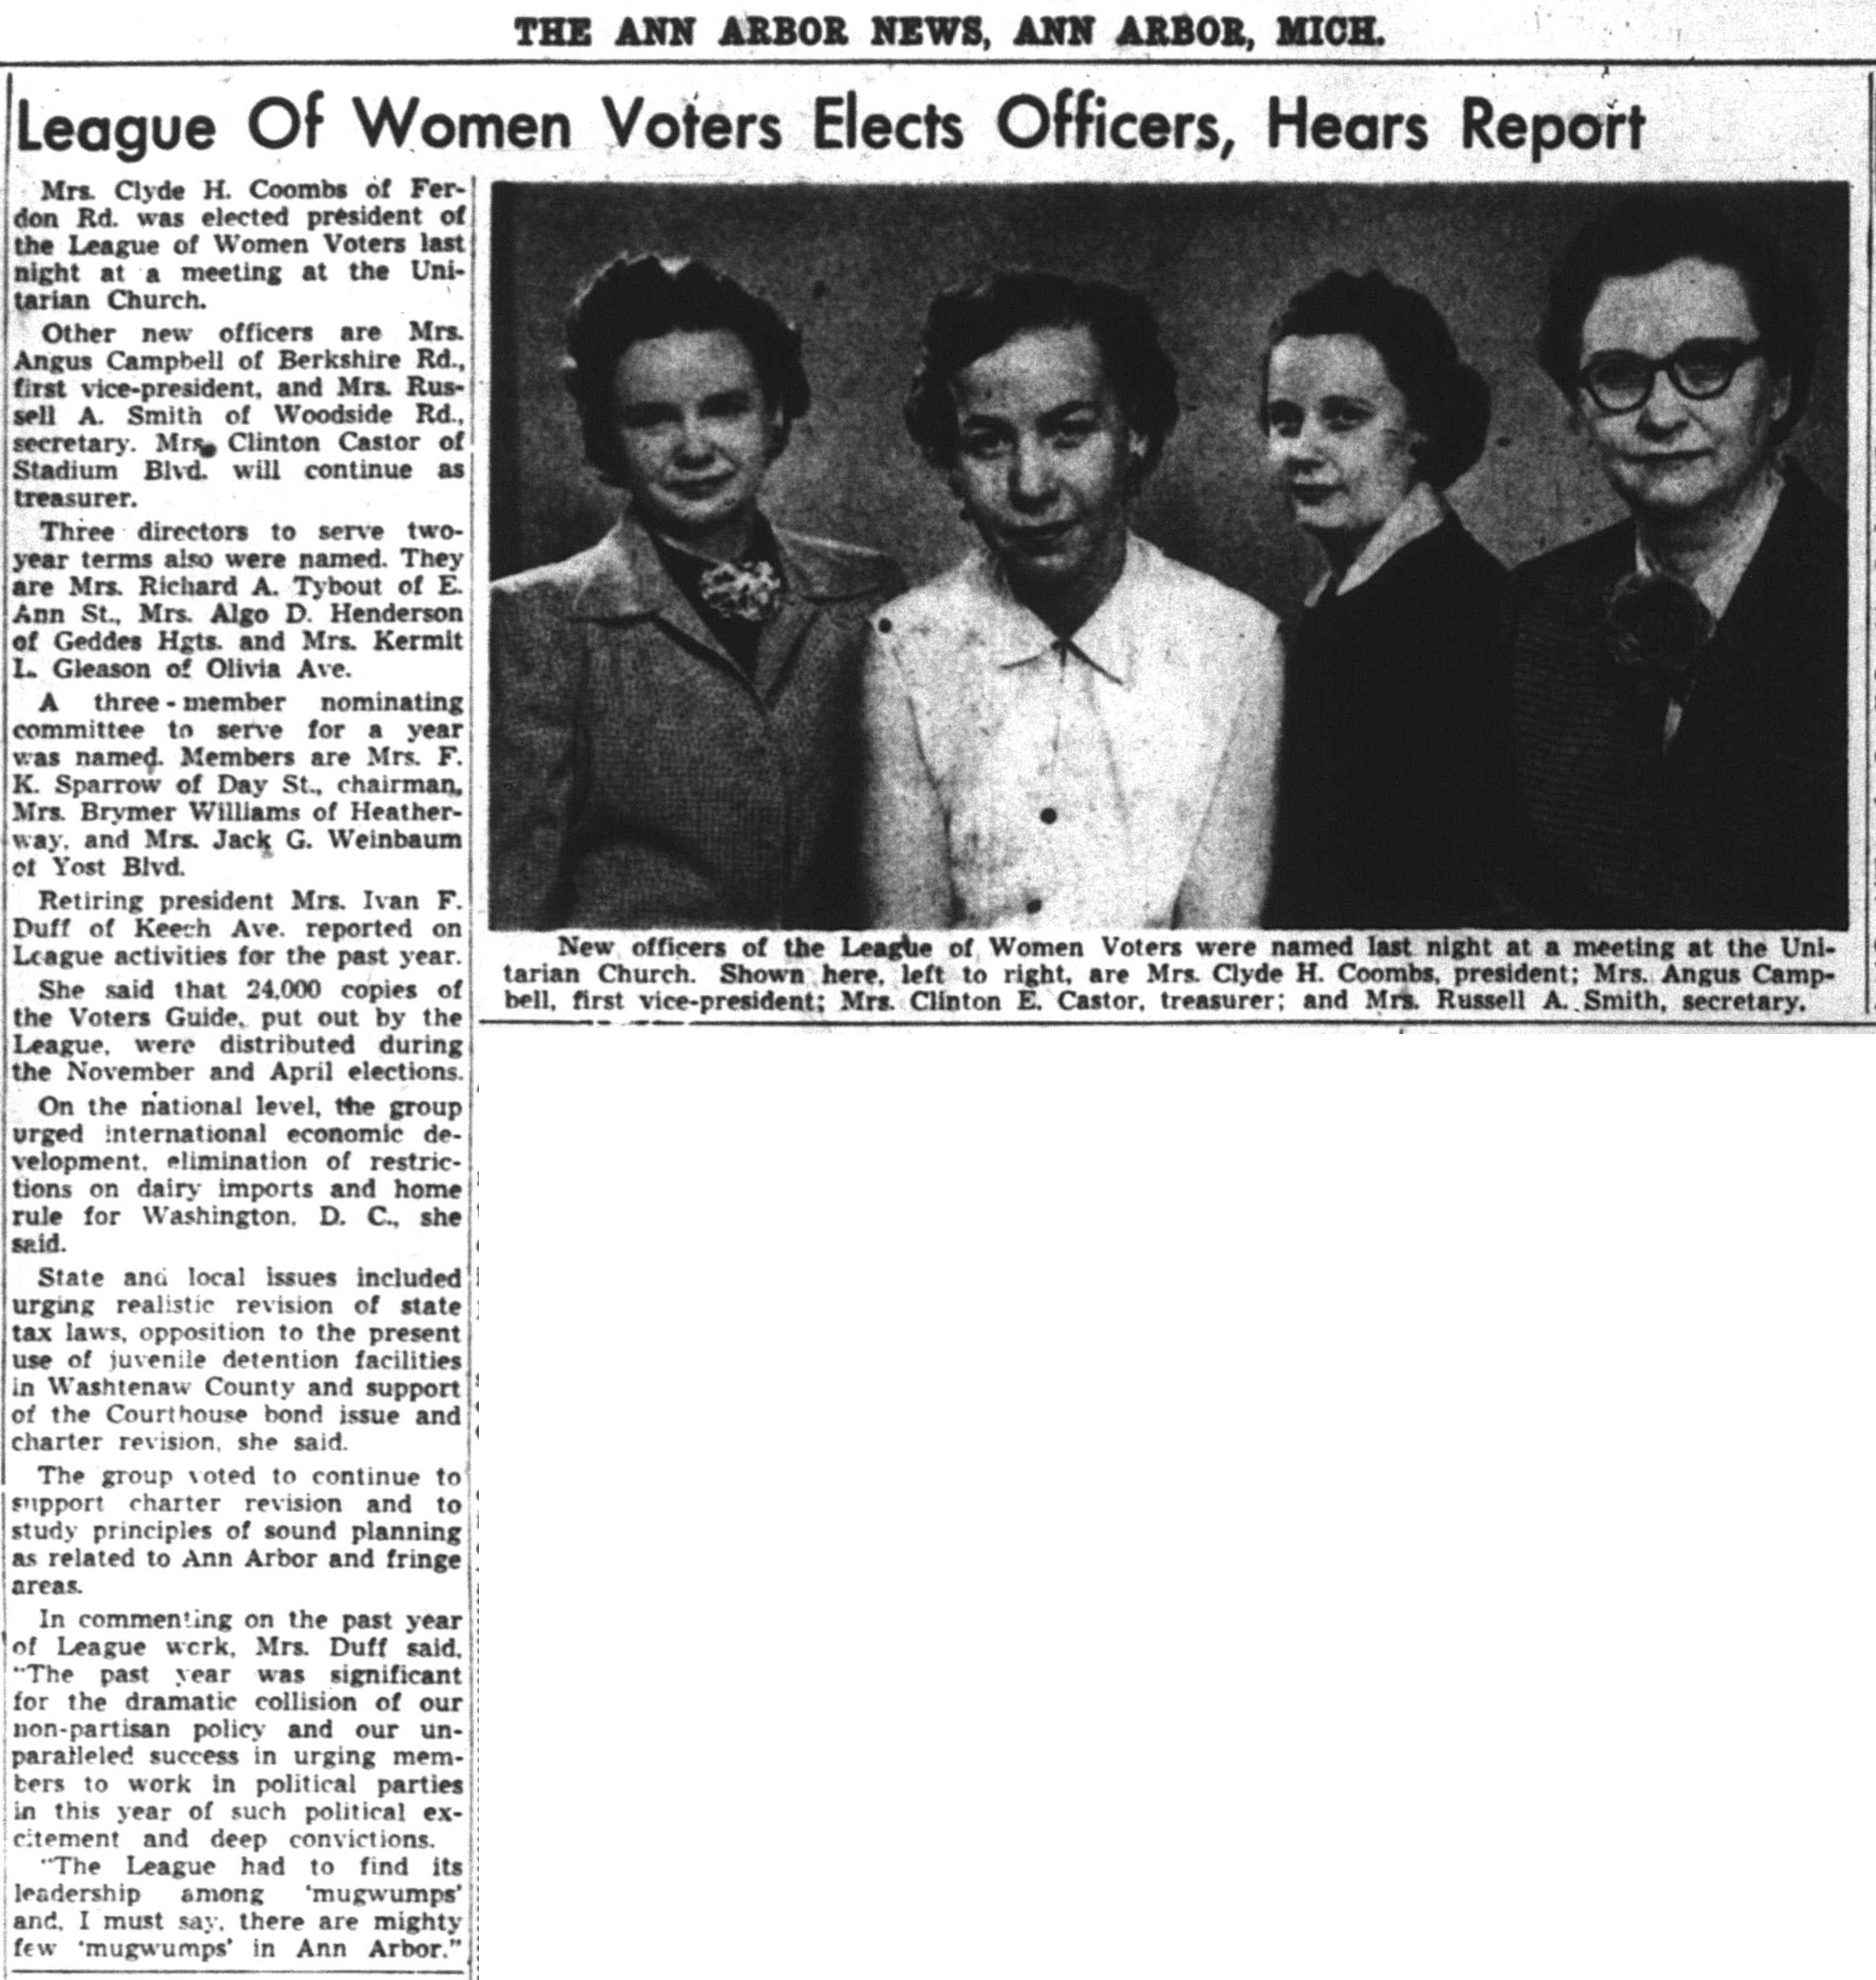 League Of Women Voters Elects Officers, Hears Report image